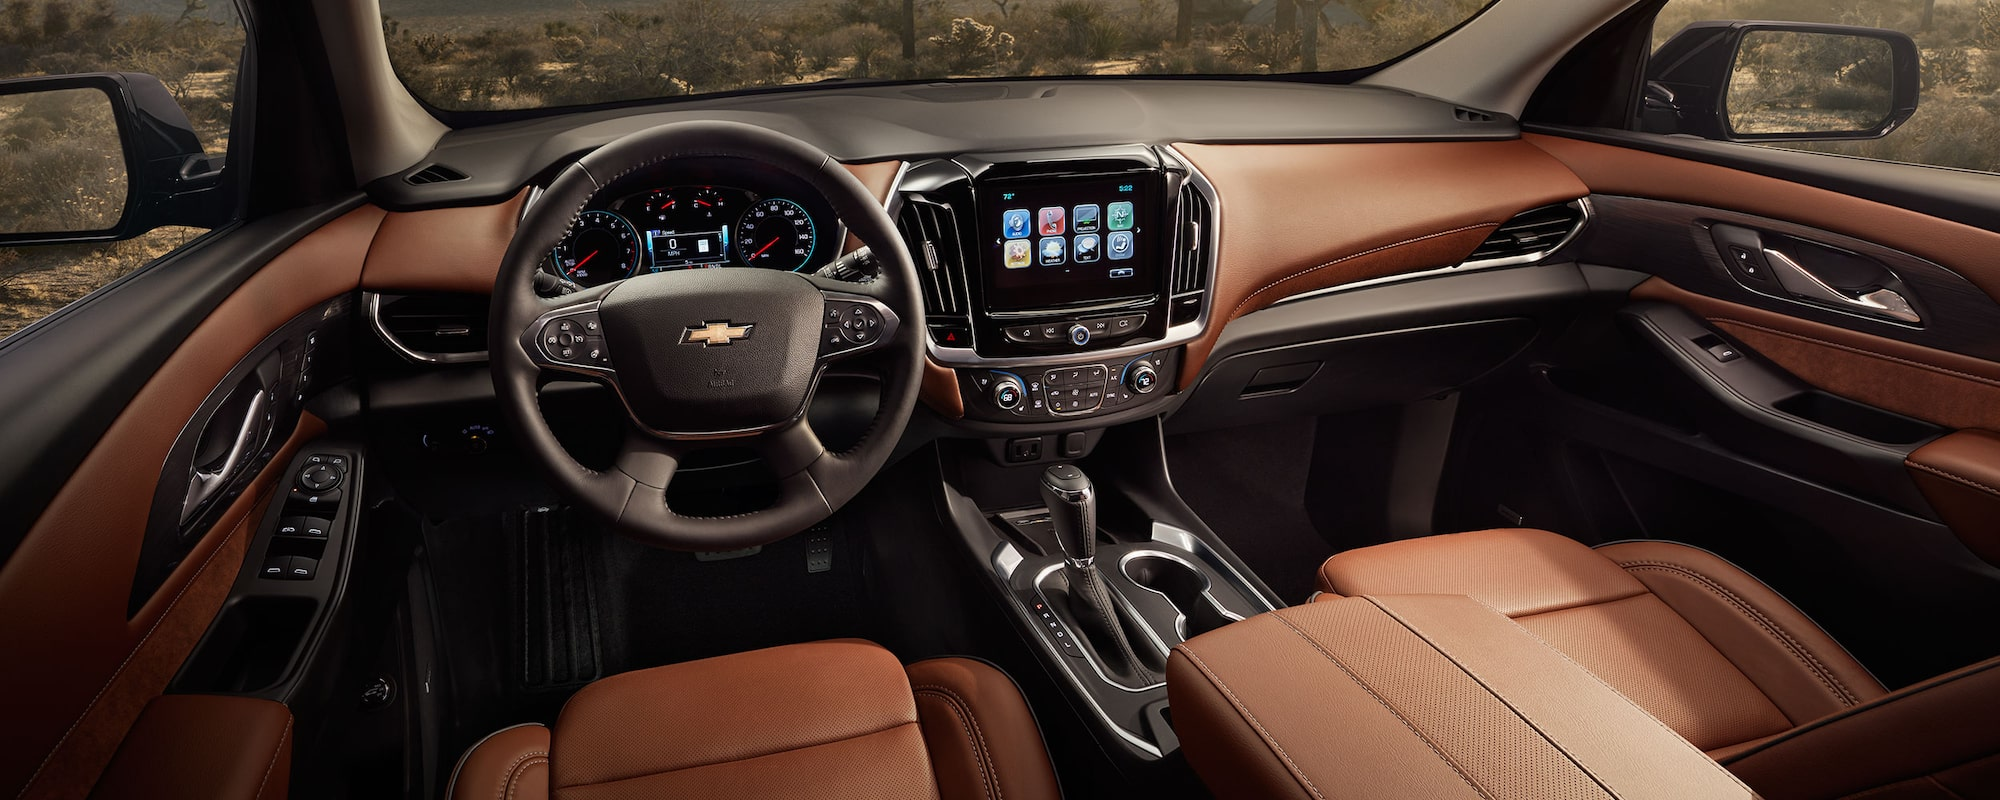 Nice 2019 Traverse Mid Size SUV Design: Interior Dashboard Nice Look